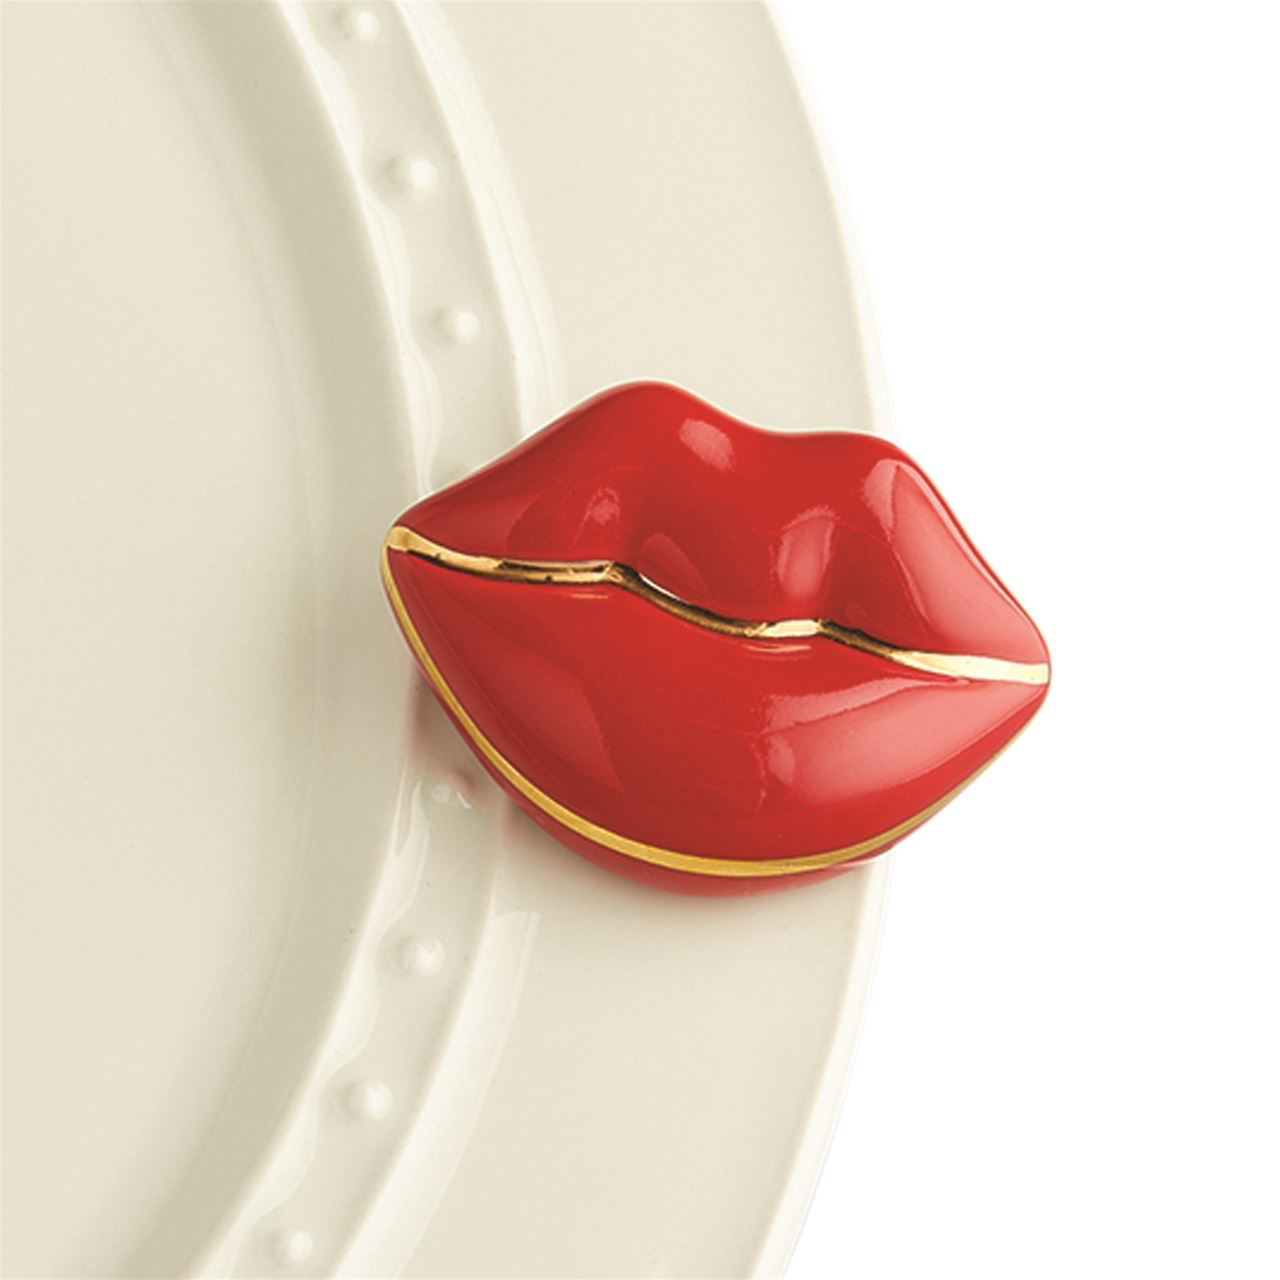 Smooches! (Lips) Mini by Nora Fleming